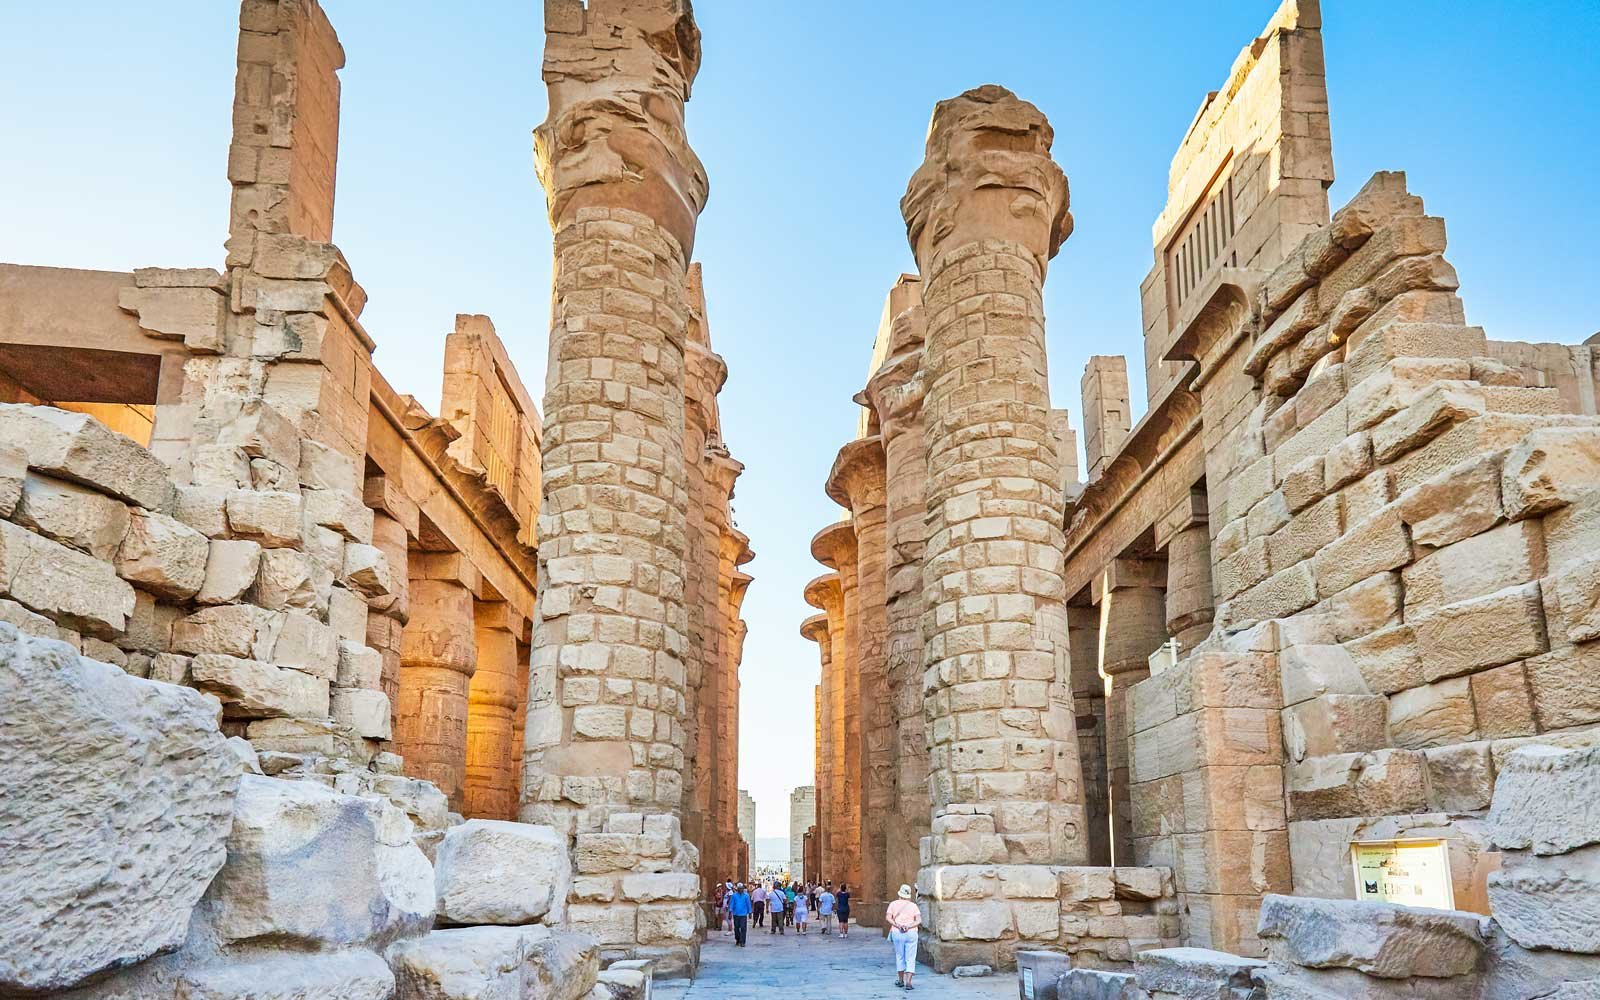 The Karnak Temple Complex, commonly known as Karnak, comprises a vast mix of decayed temples, chapels, pylons, and other buildings. Building at the complex began during the reign of Senusret I.